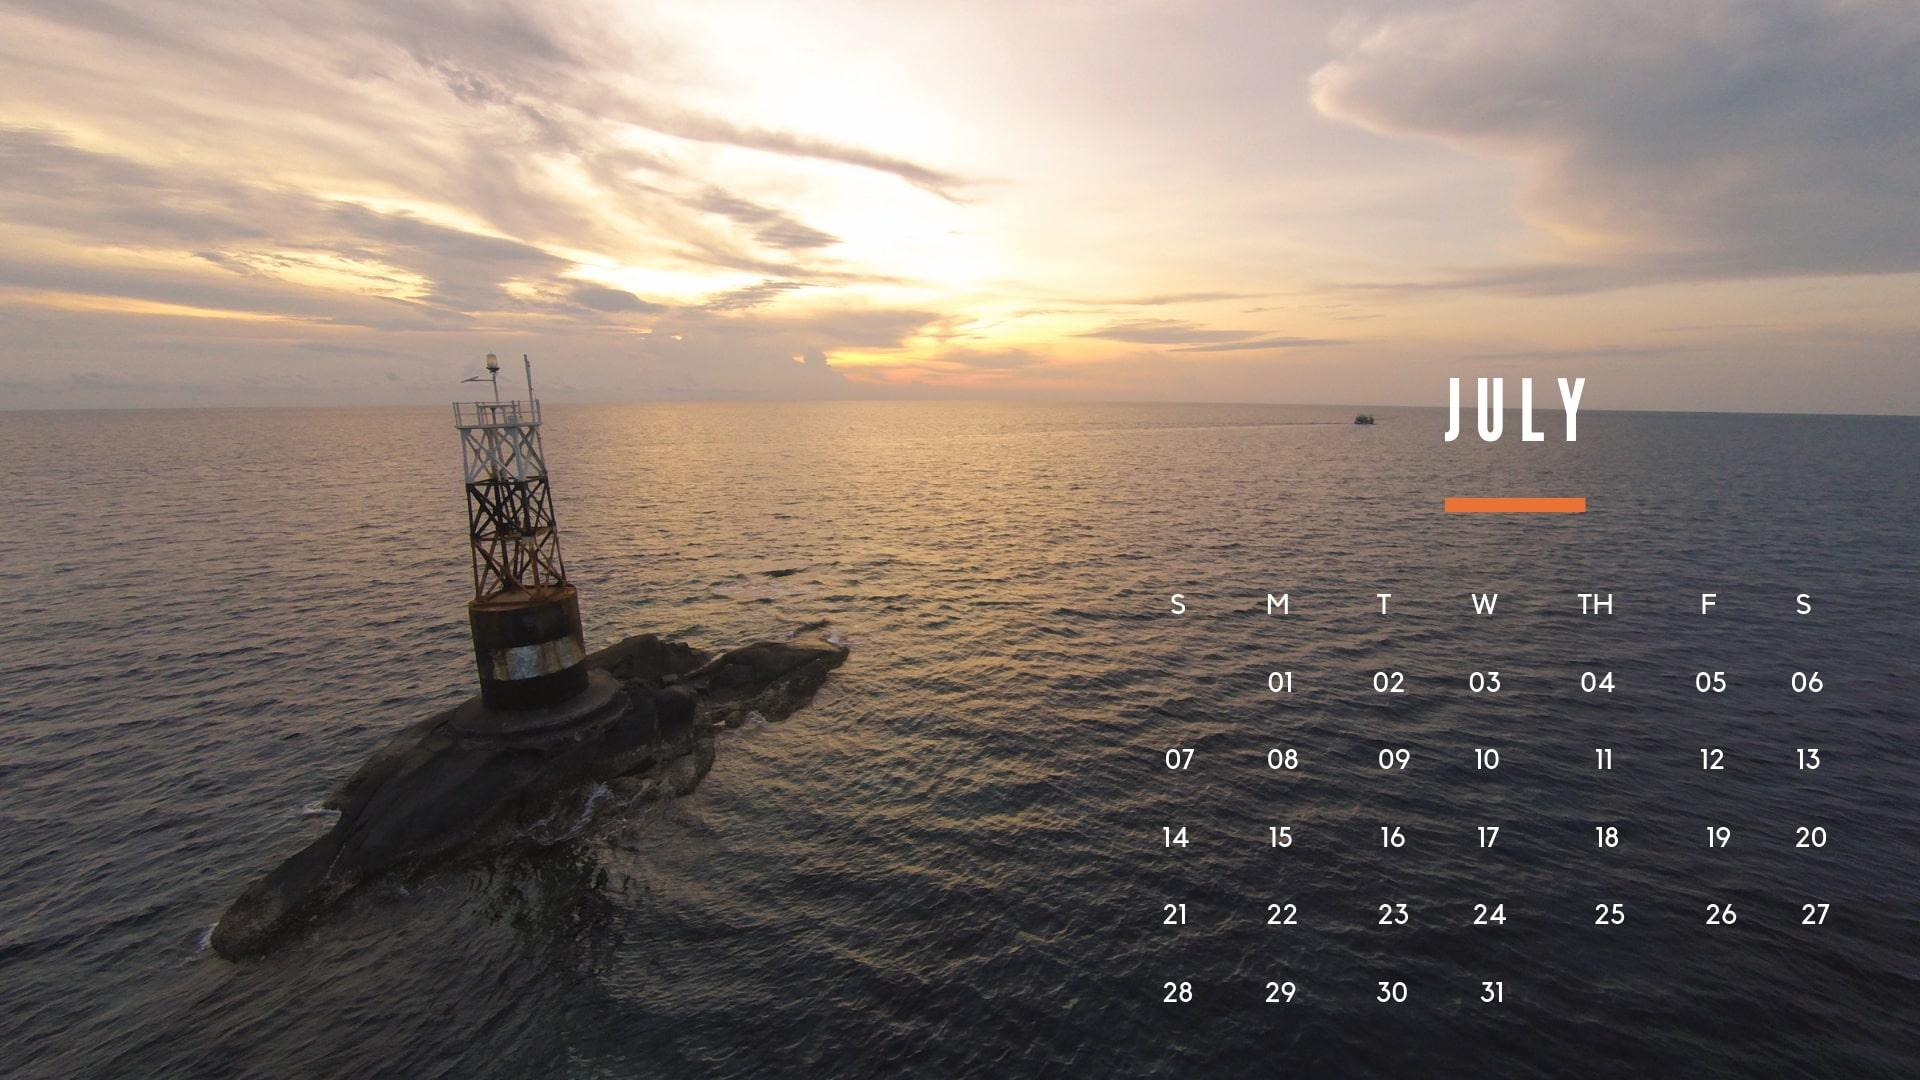 Calendar Wallpapers 2019: Download Monthly 2019 Calendar Wallpapers